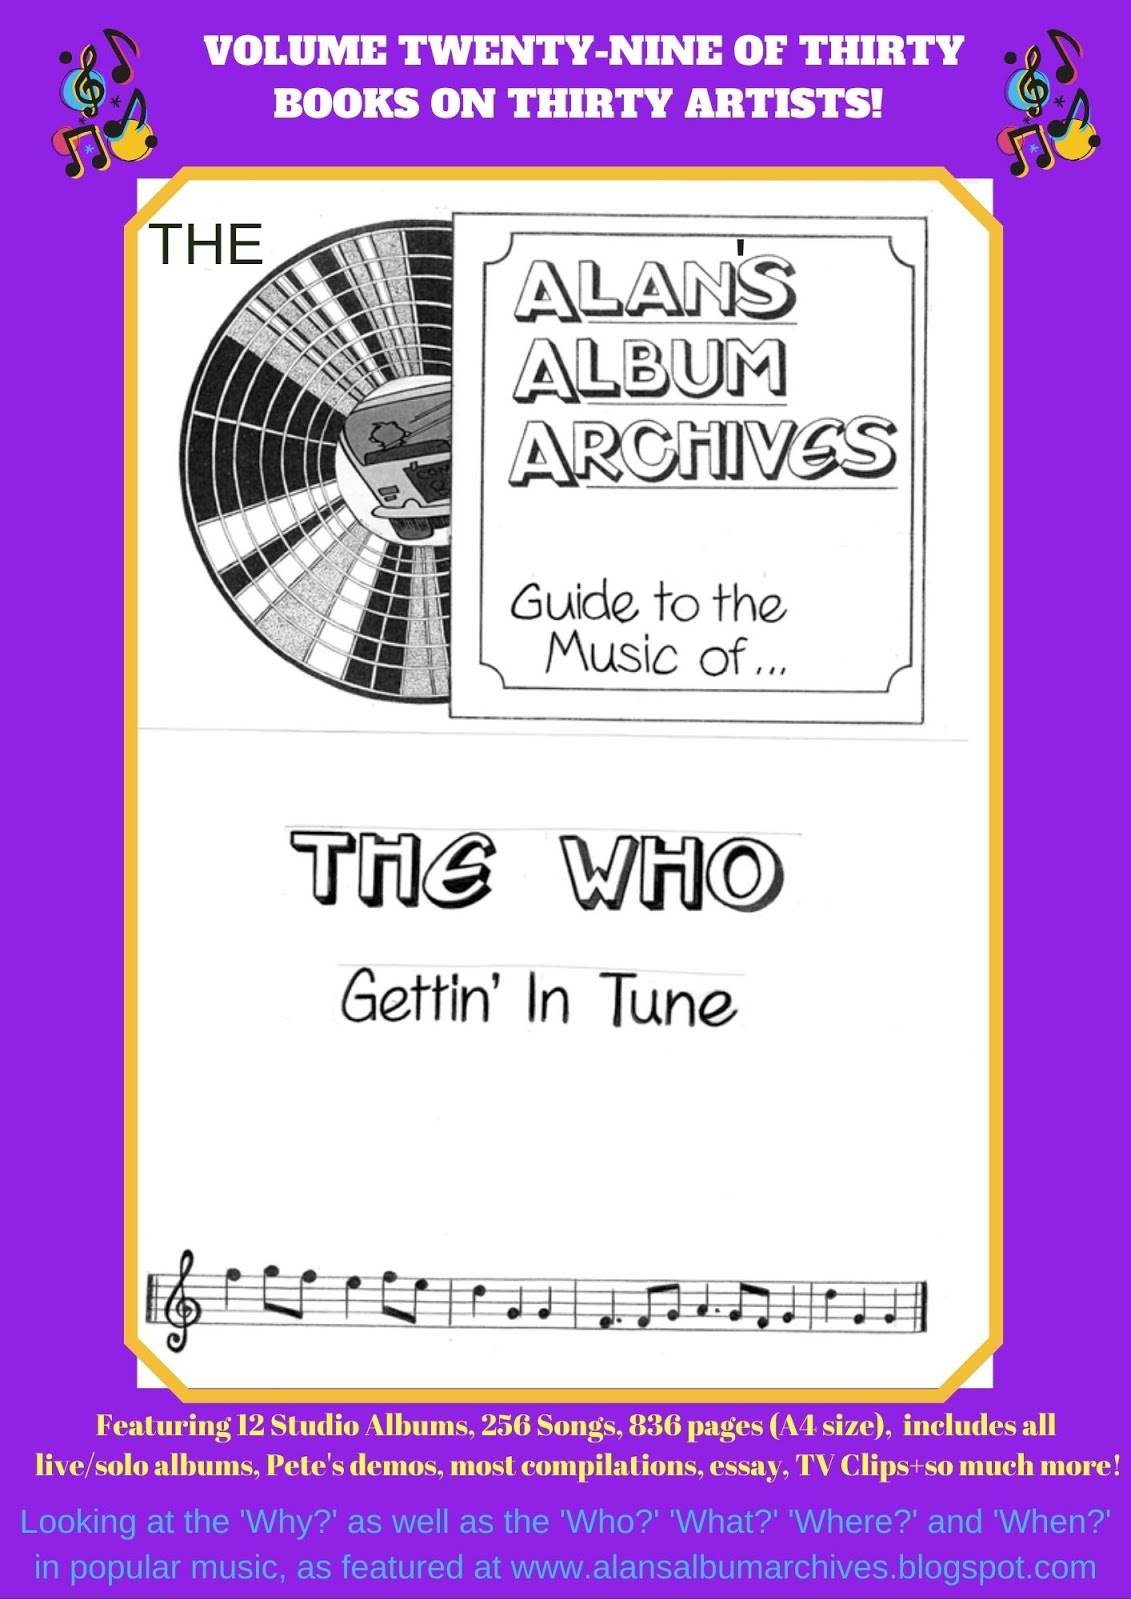 'Gettin' In Tune - The Alan's Album Archives Guide To The Music Of...The Who'